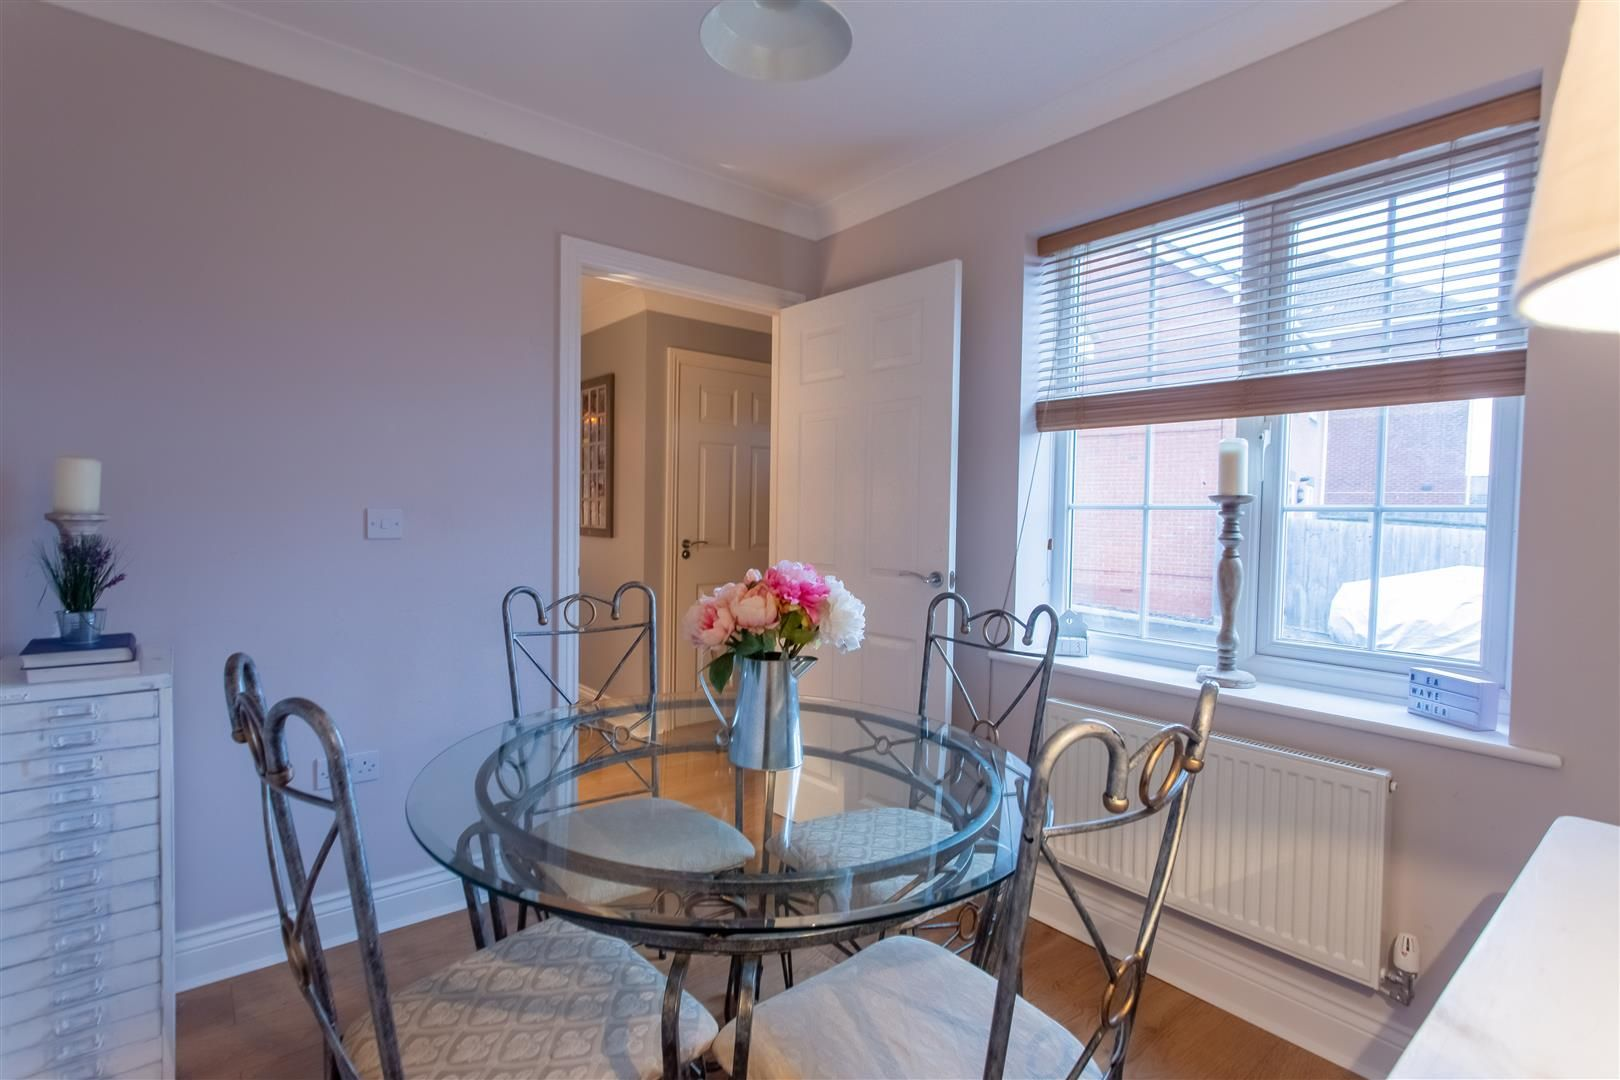 3 bed detached for sale in Hereford  - Property Image 10